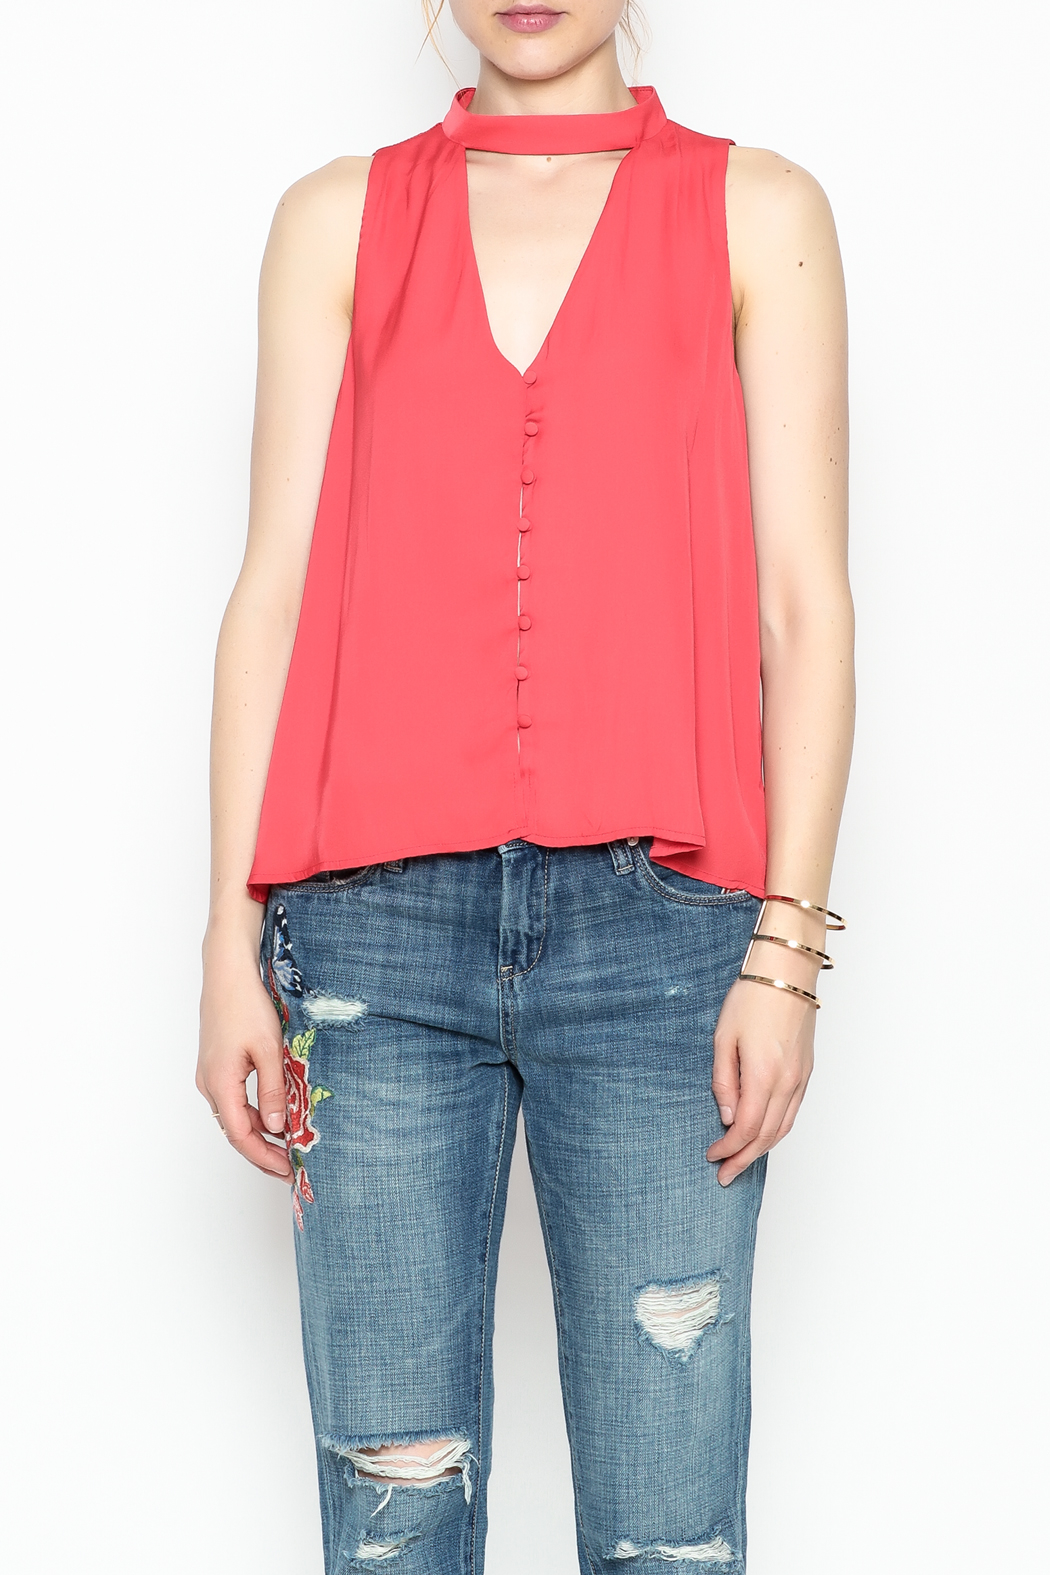 Lush Red Satin Top - Front Cropped Image